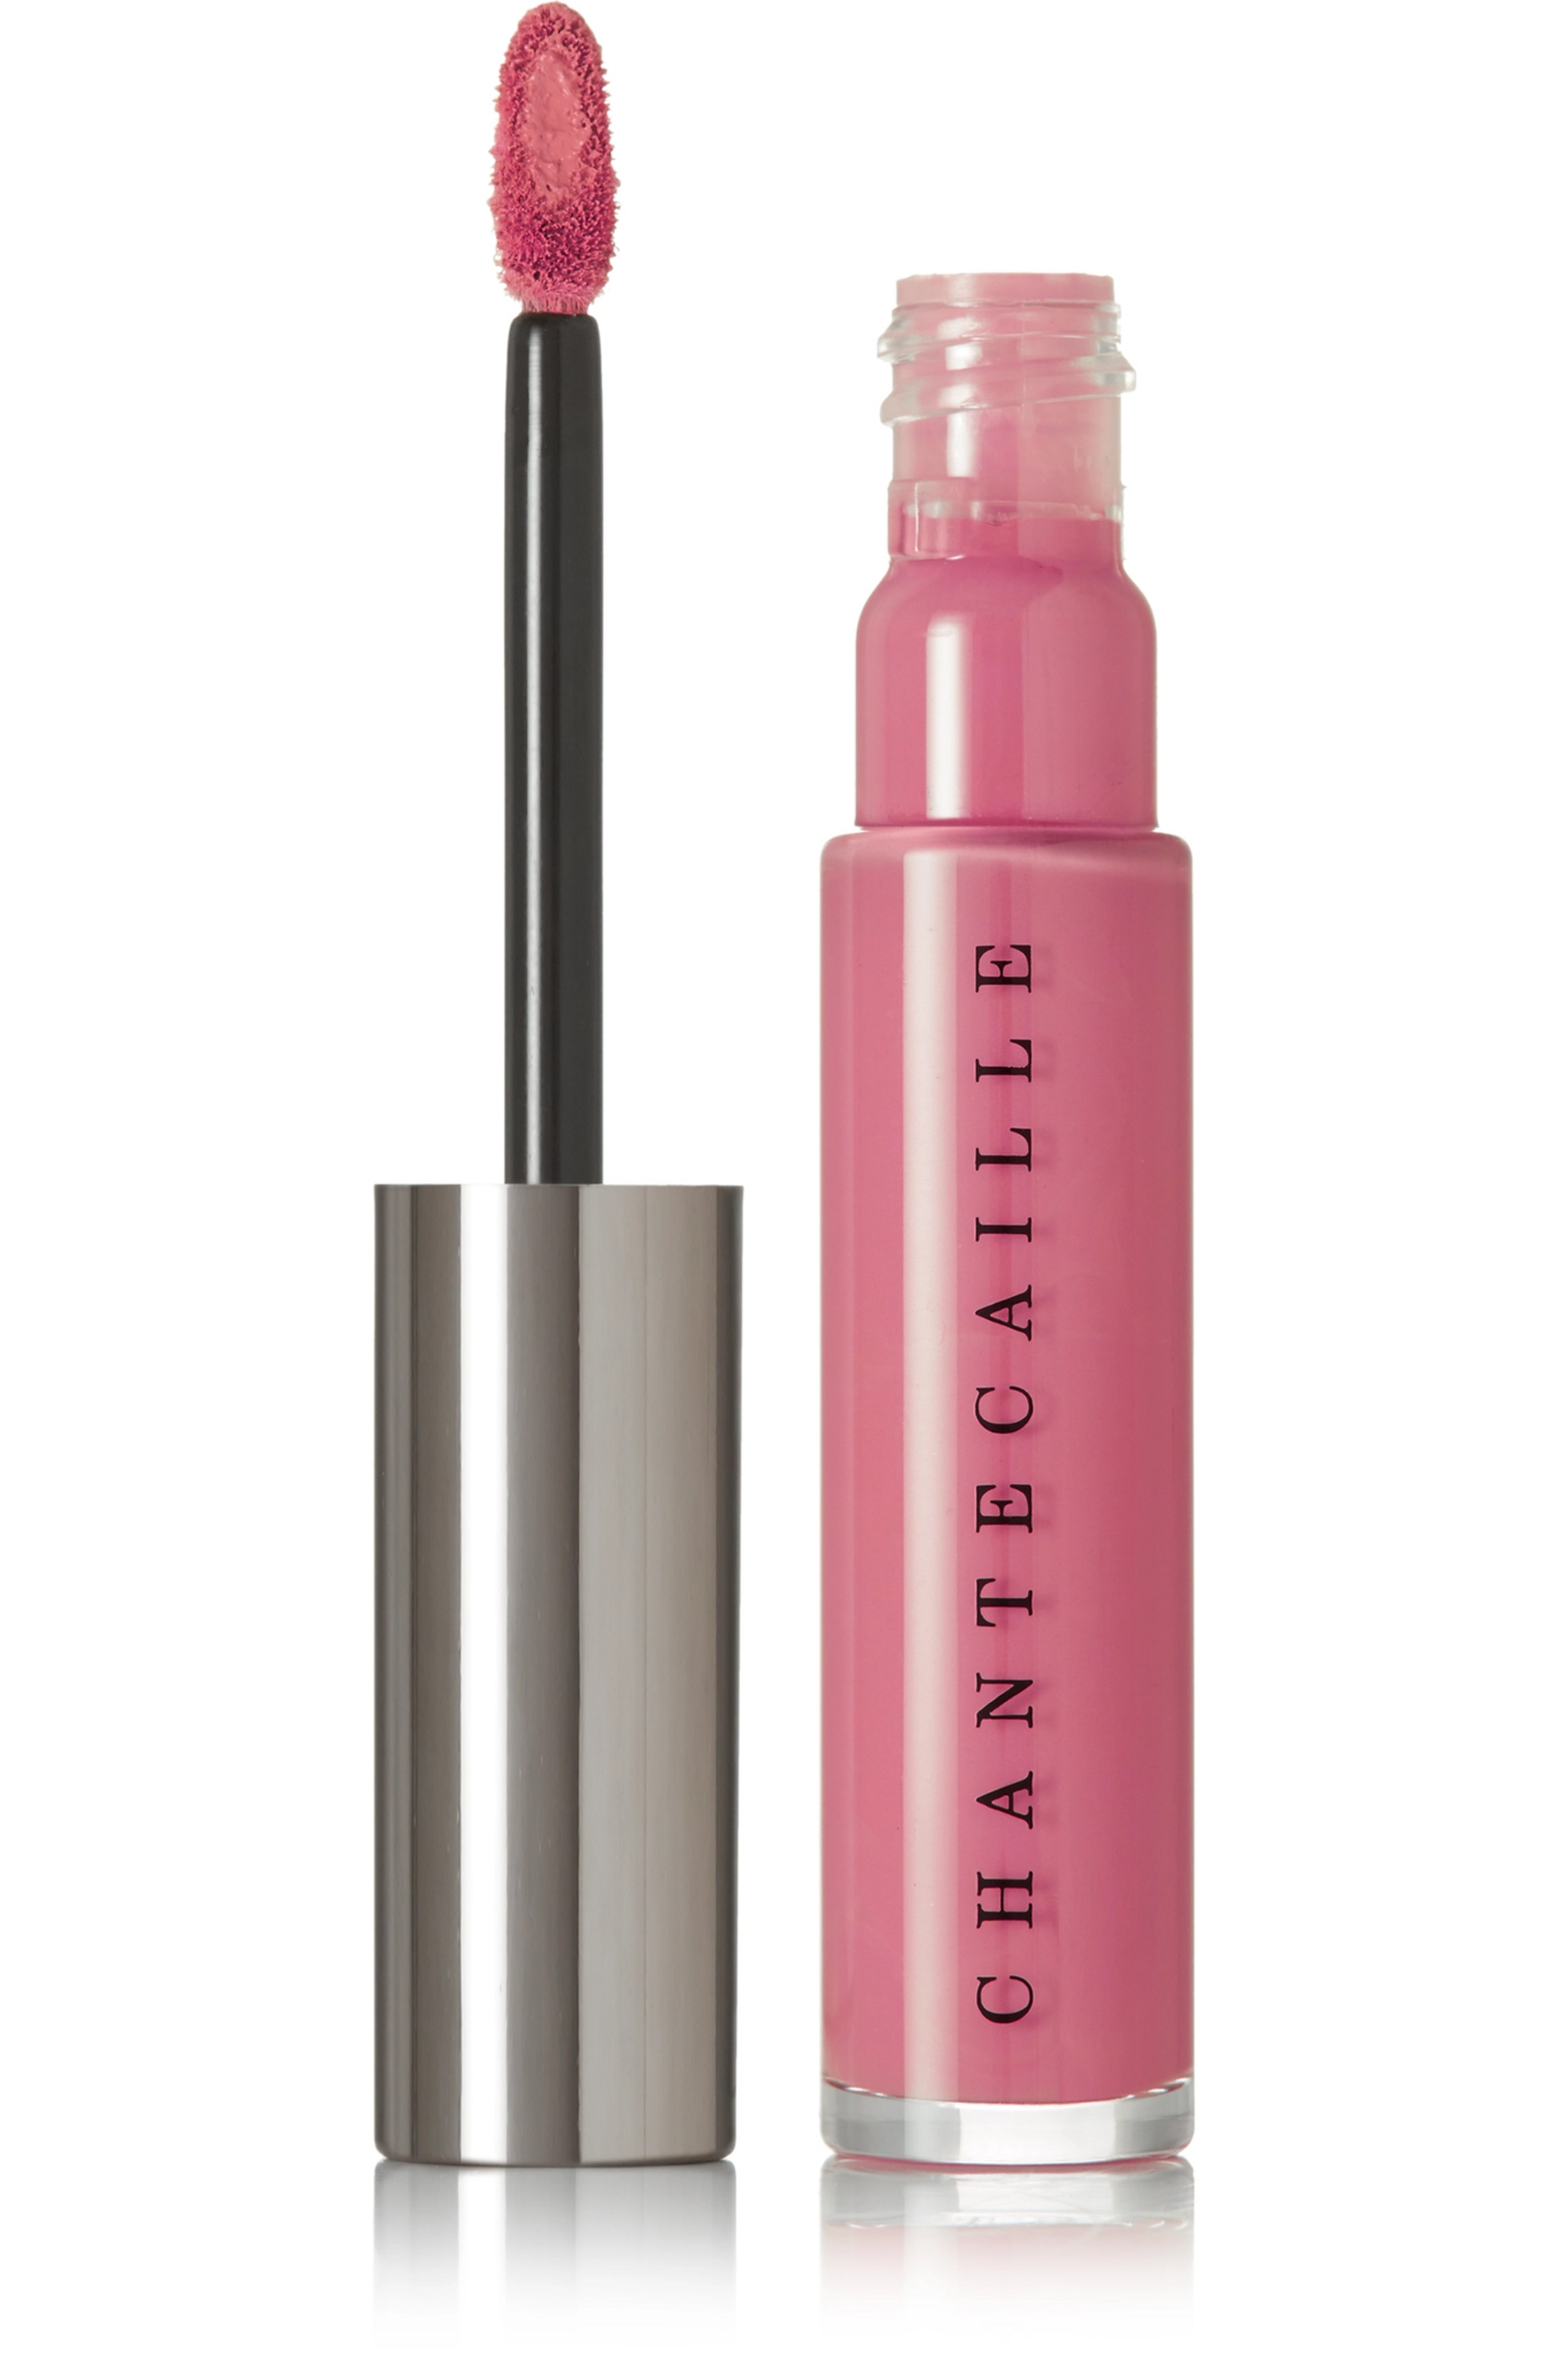 Chantecaille Matte Chic Liquid Lipstick - Jerry